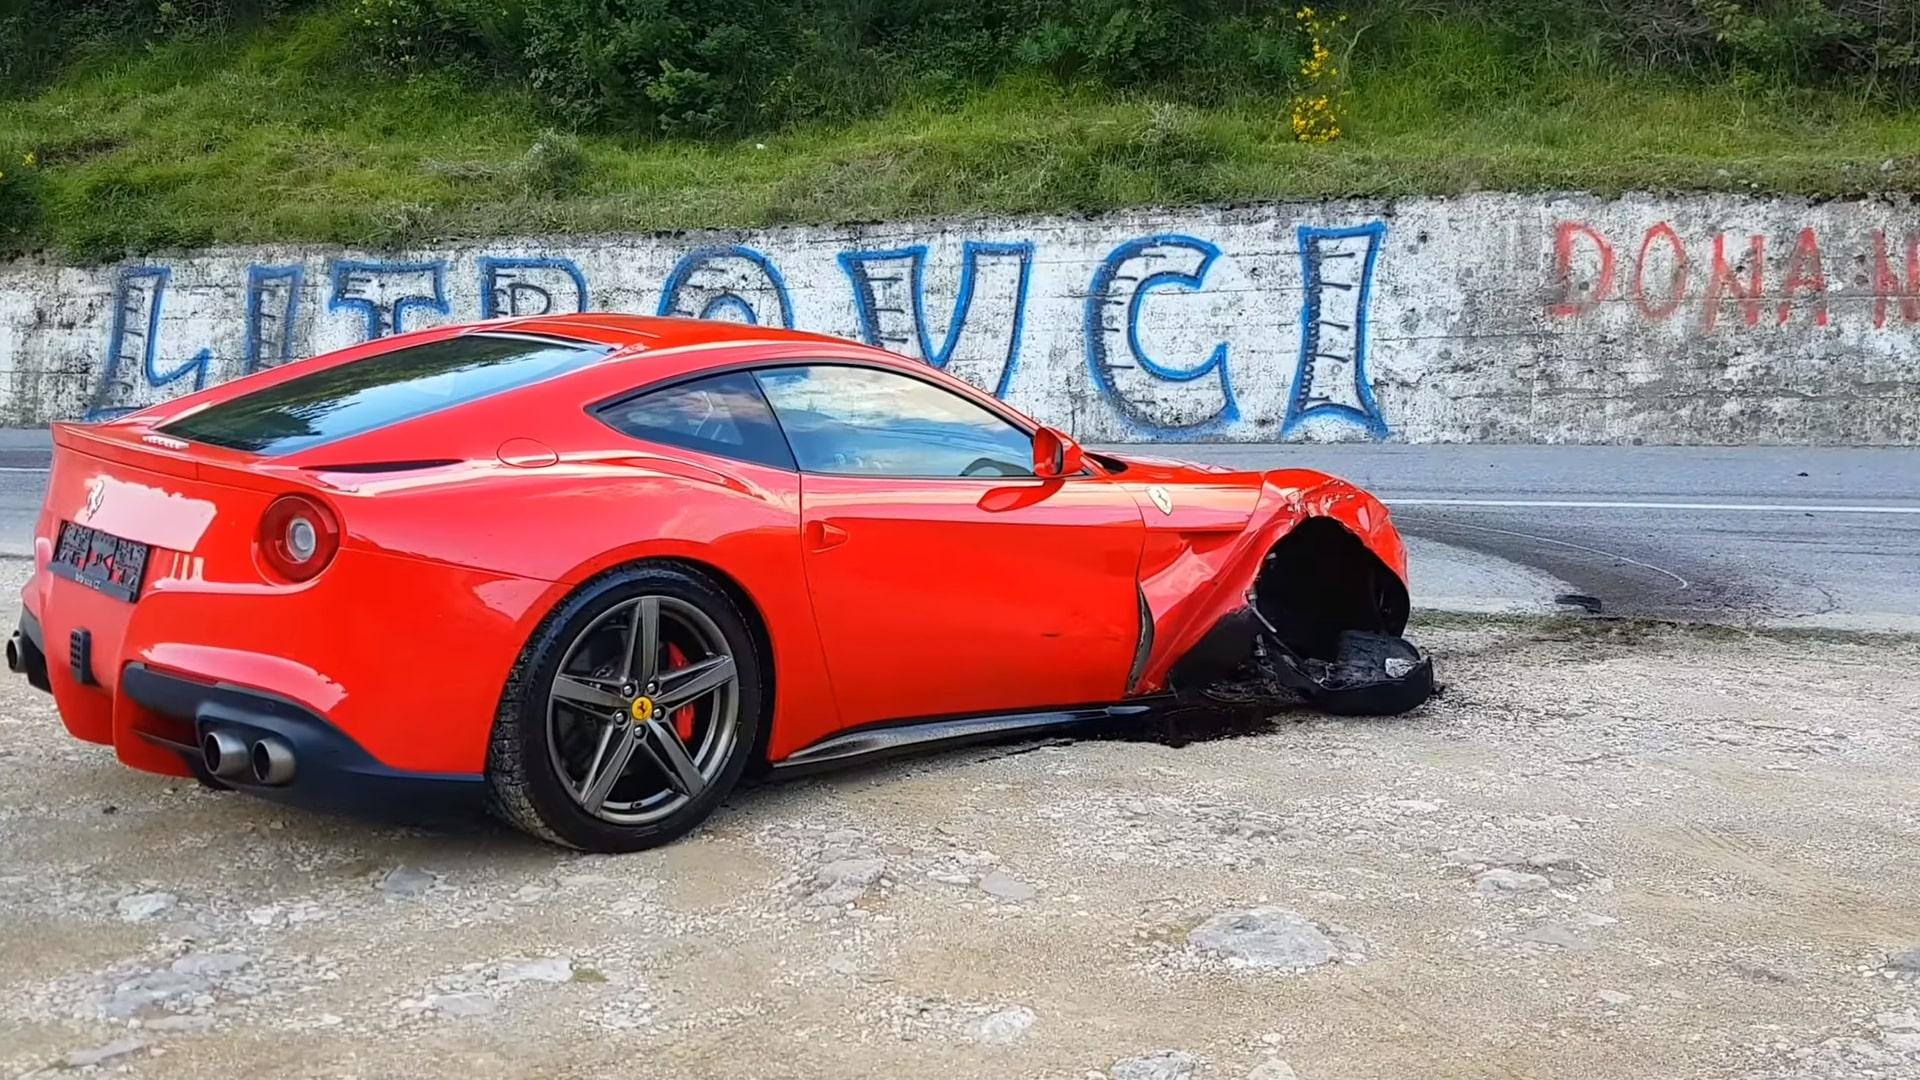 Ferrari F12 Berlinetta crasht